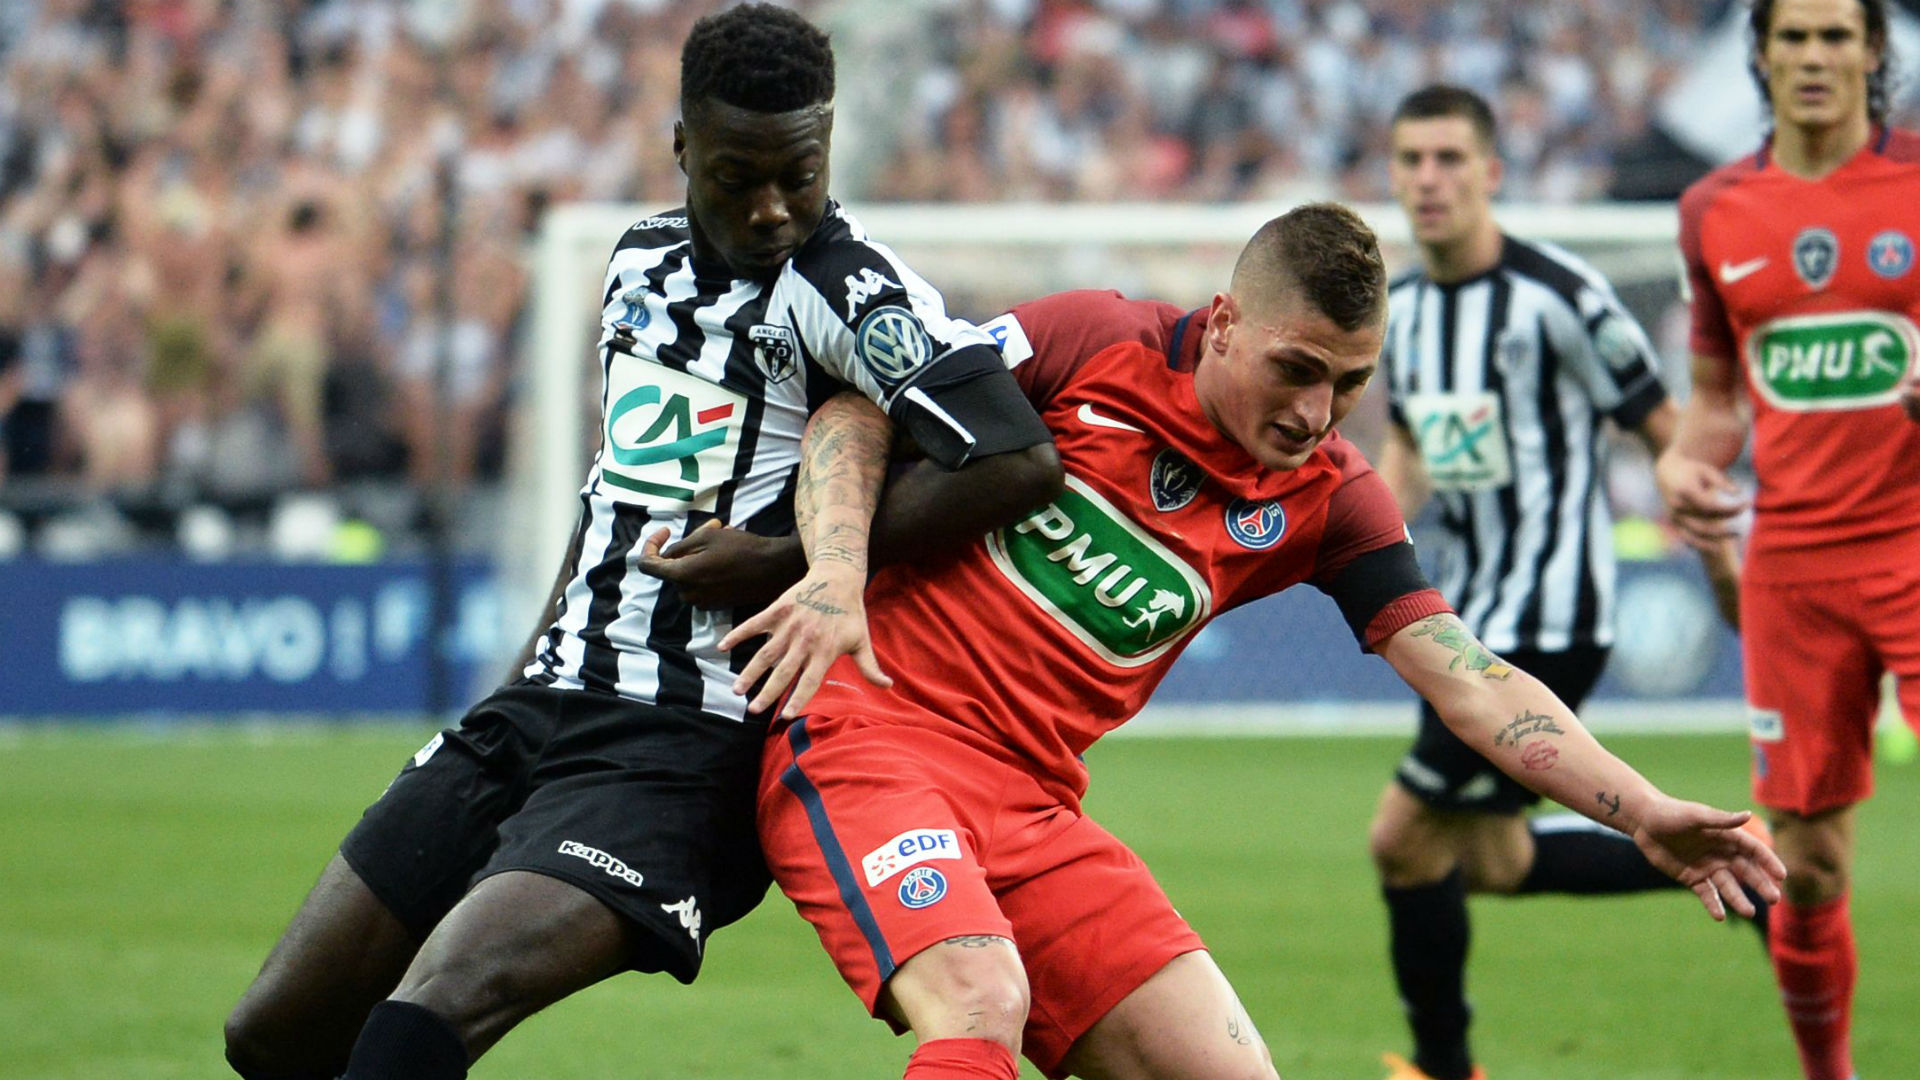 https://images.performgroup.com/di/library/GOAL/38/92/marco-verratti-angers-psg-coupe-de-france-27052017_1xv9ld8kcdh451b7lato43dmz9.jpg